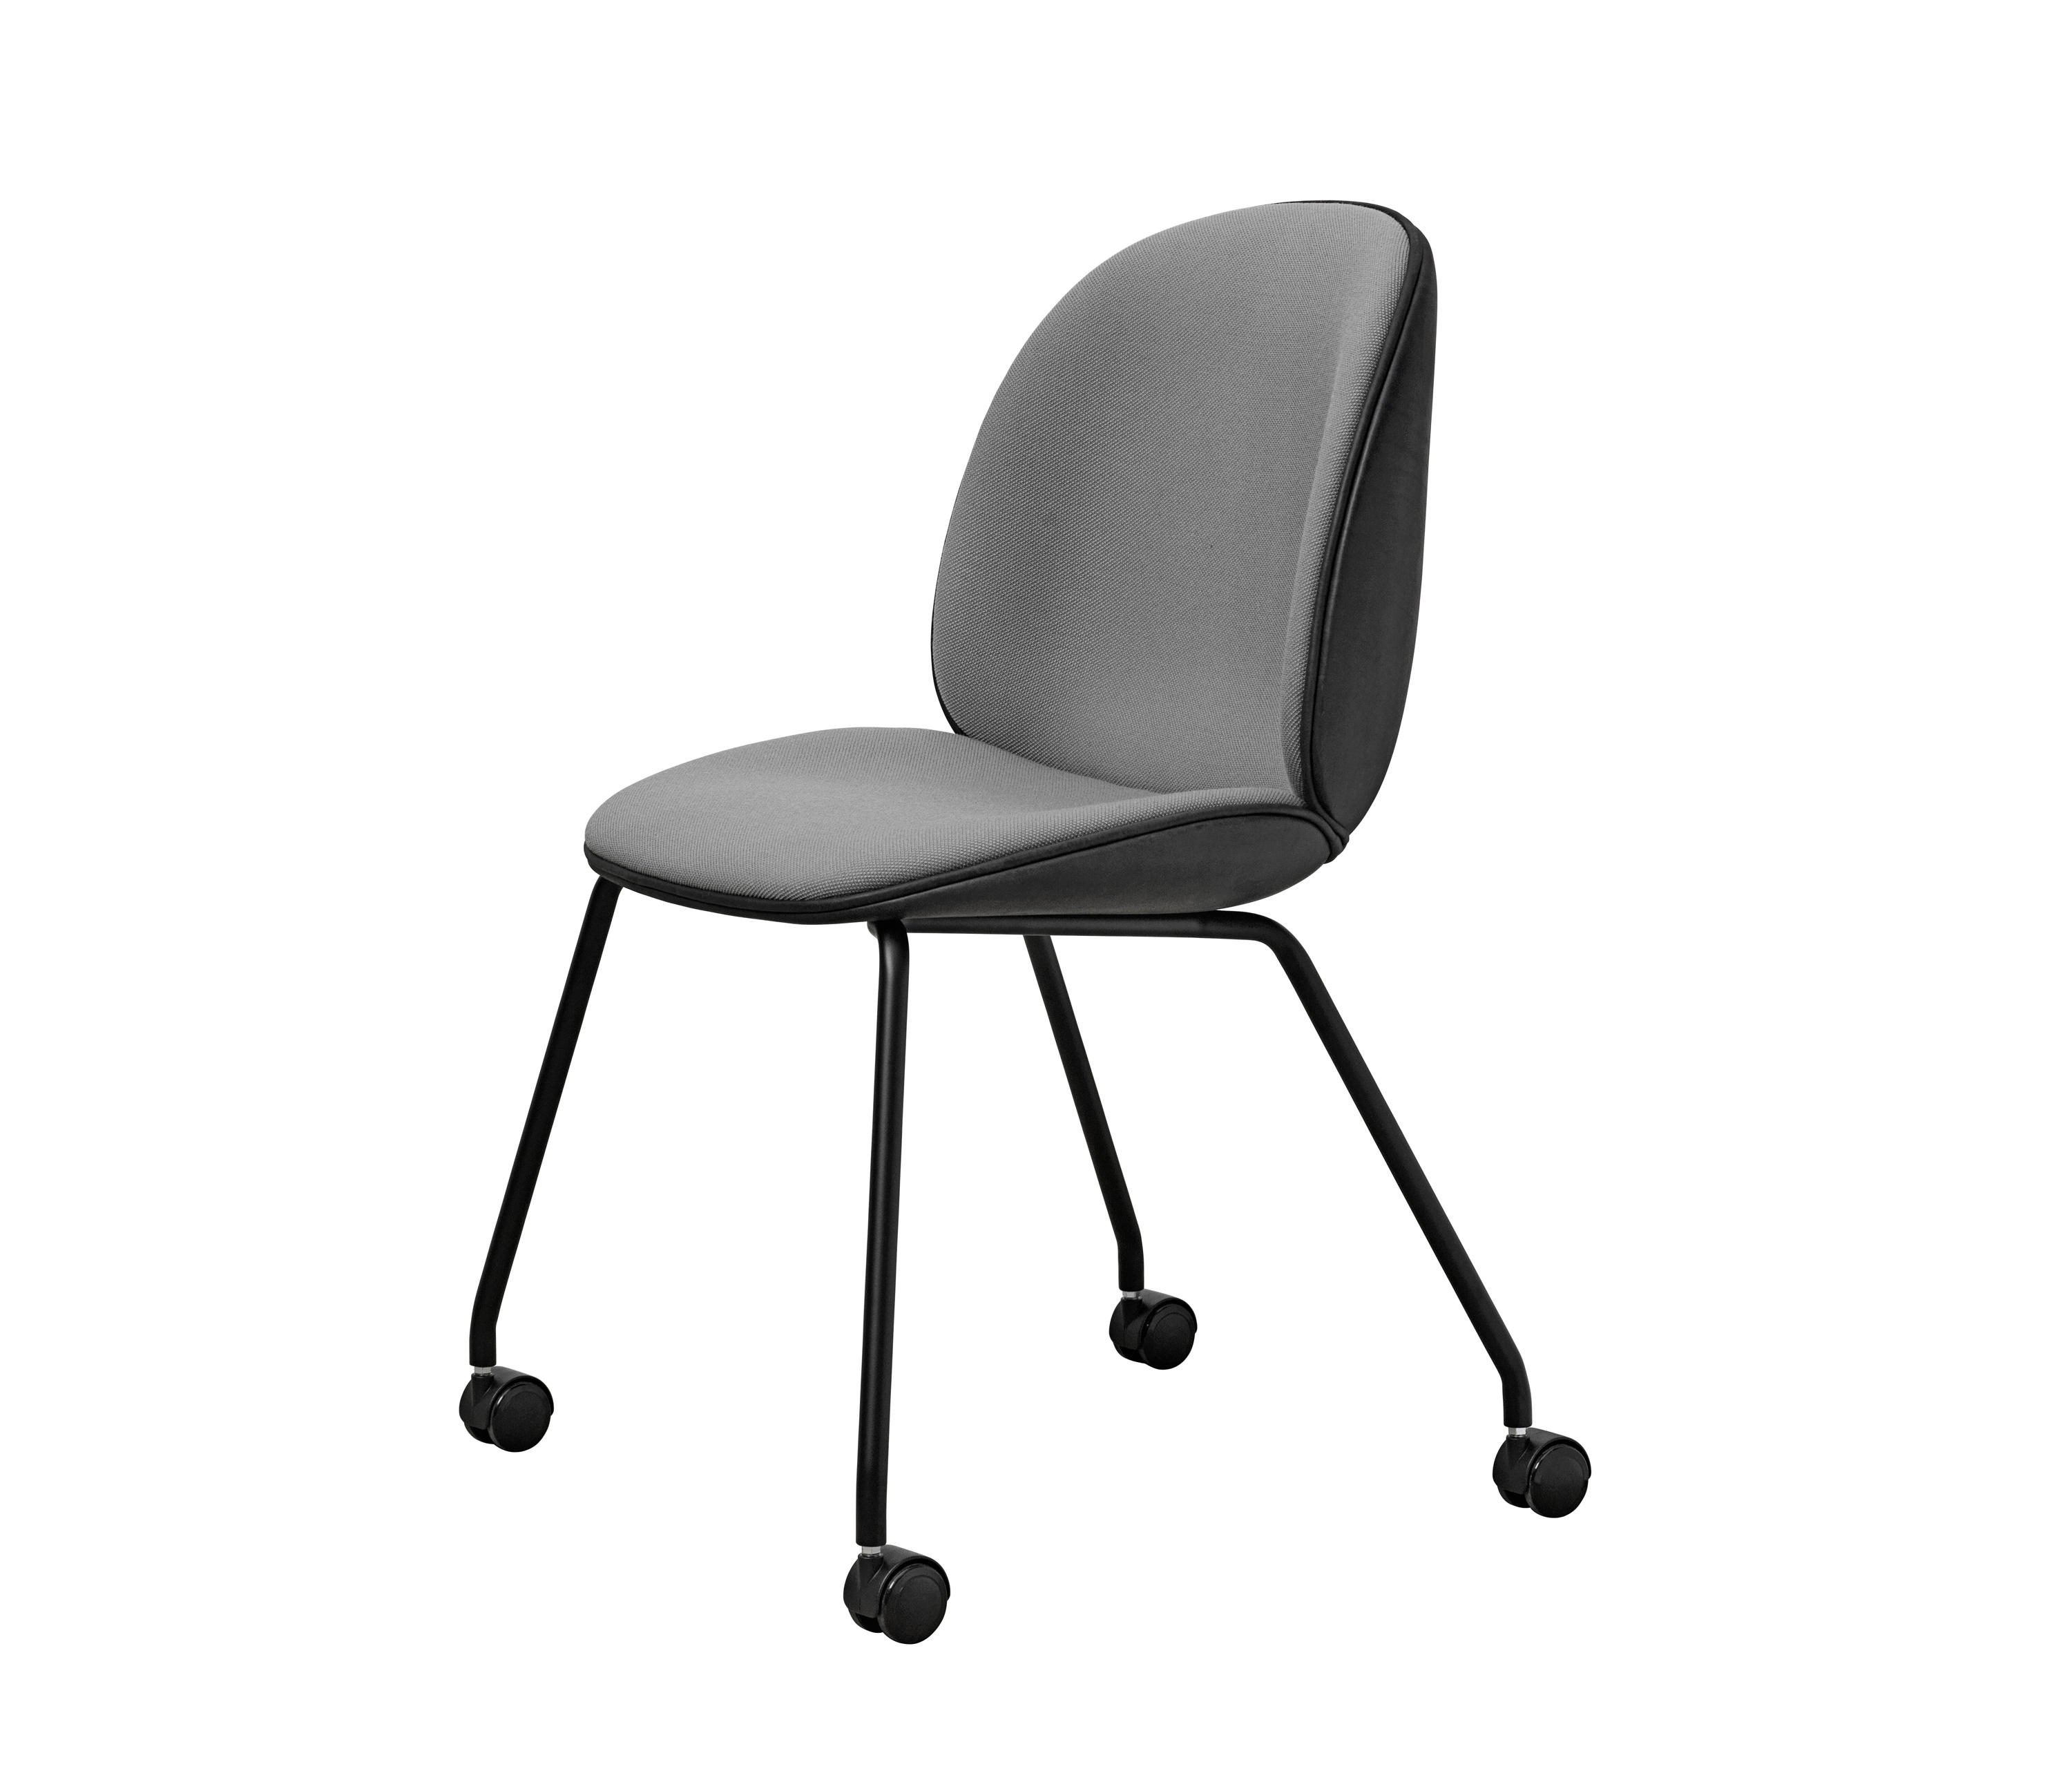 beetle castor chair conference chairs from gubi architonic. Black Bedroom Furniture Sets. Home Design Ideas